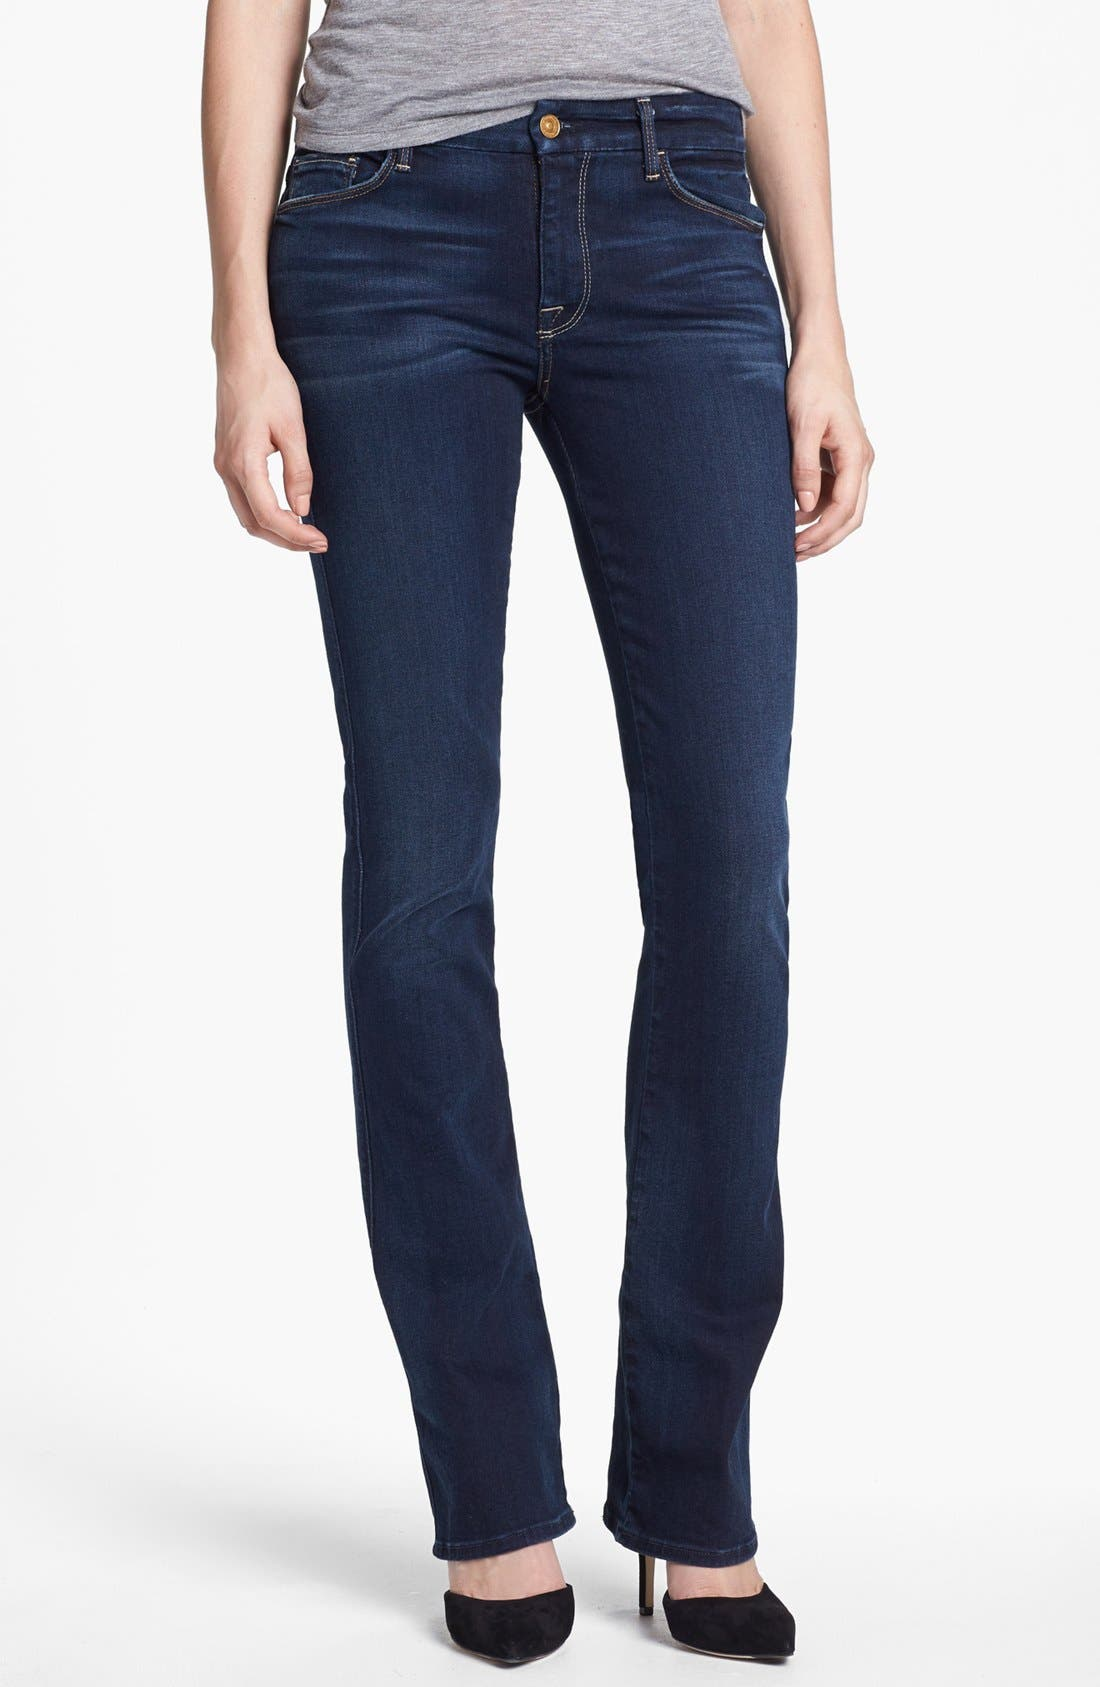 Alternate Image 1 Selected - 7 For All Mankind® 'The Skinny' Bootcut Jeans (Merci Blue)